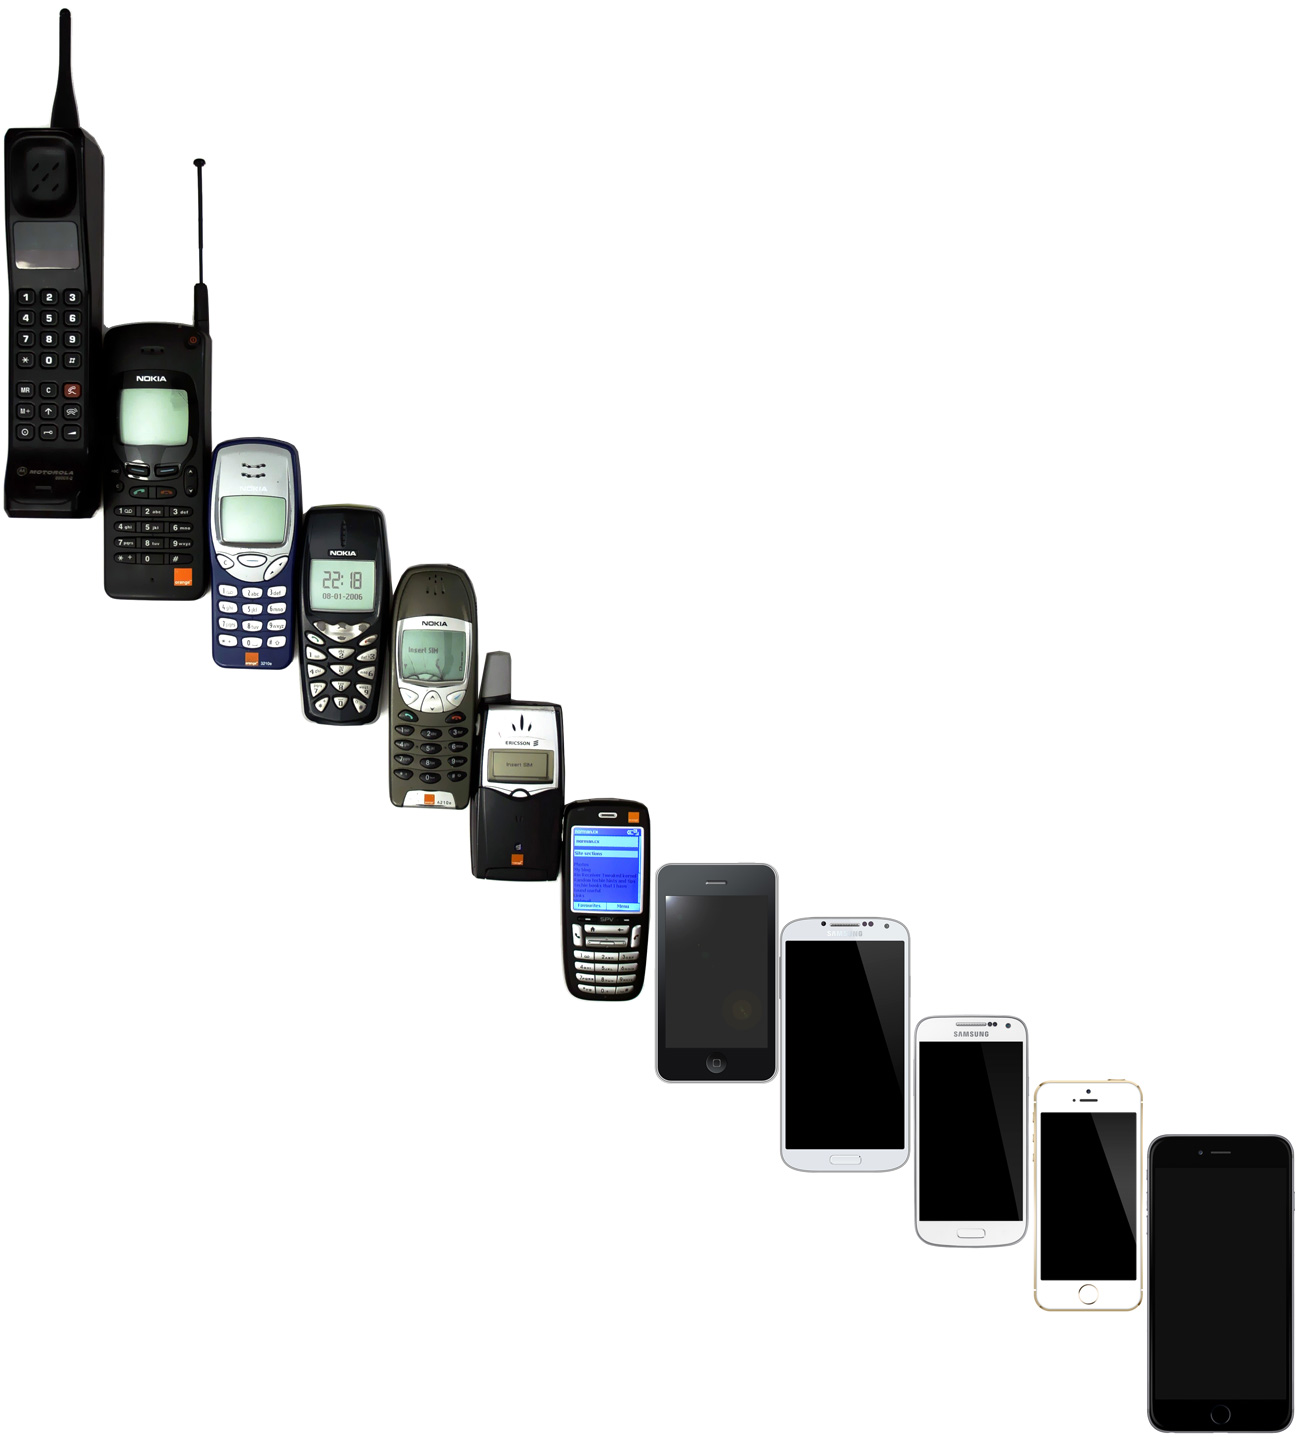 The First Mobile Phone Was Invented By Motorola In 1973 Still Rise Of Phones Began Only Early Nineties When Evolution Digital